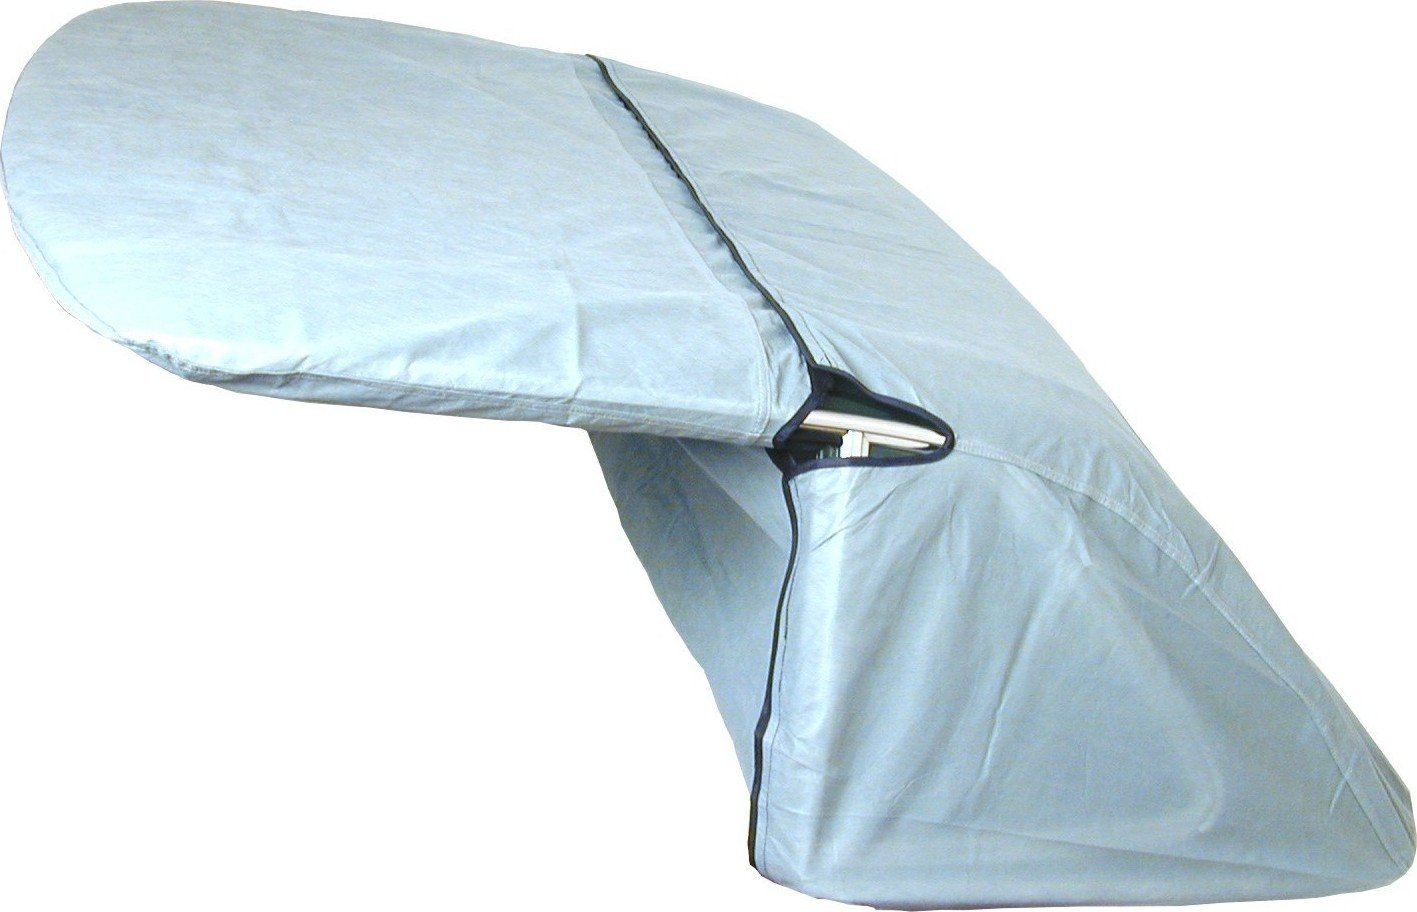 For Hard Top on Hoist URO Parts THCOVER Hard Top Cover